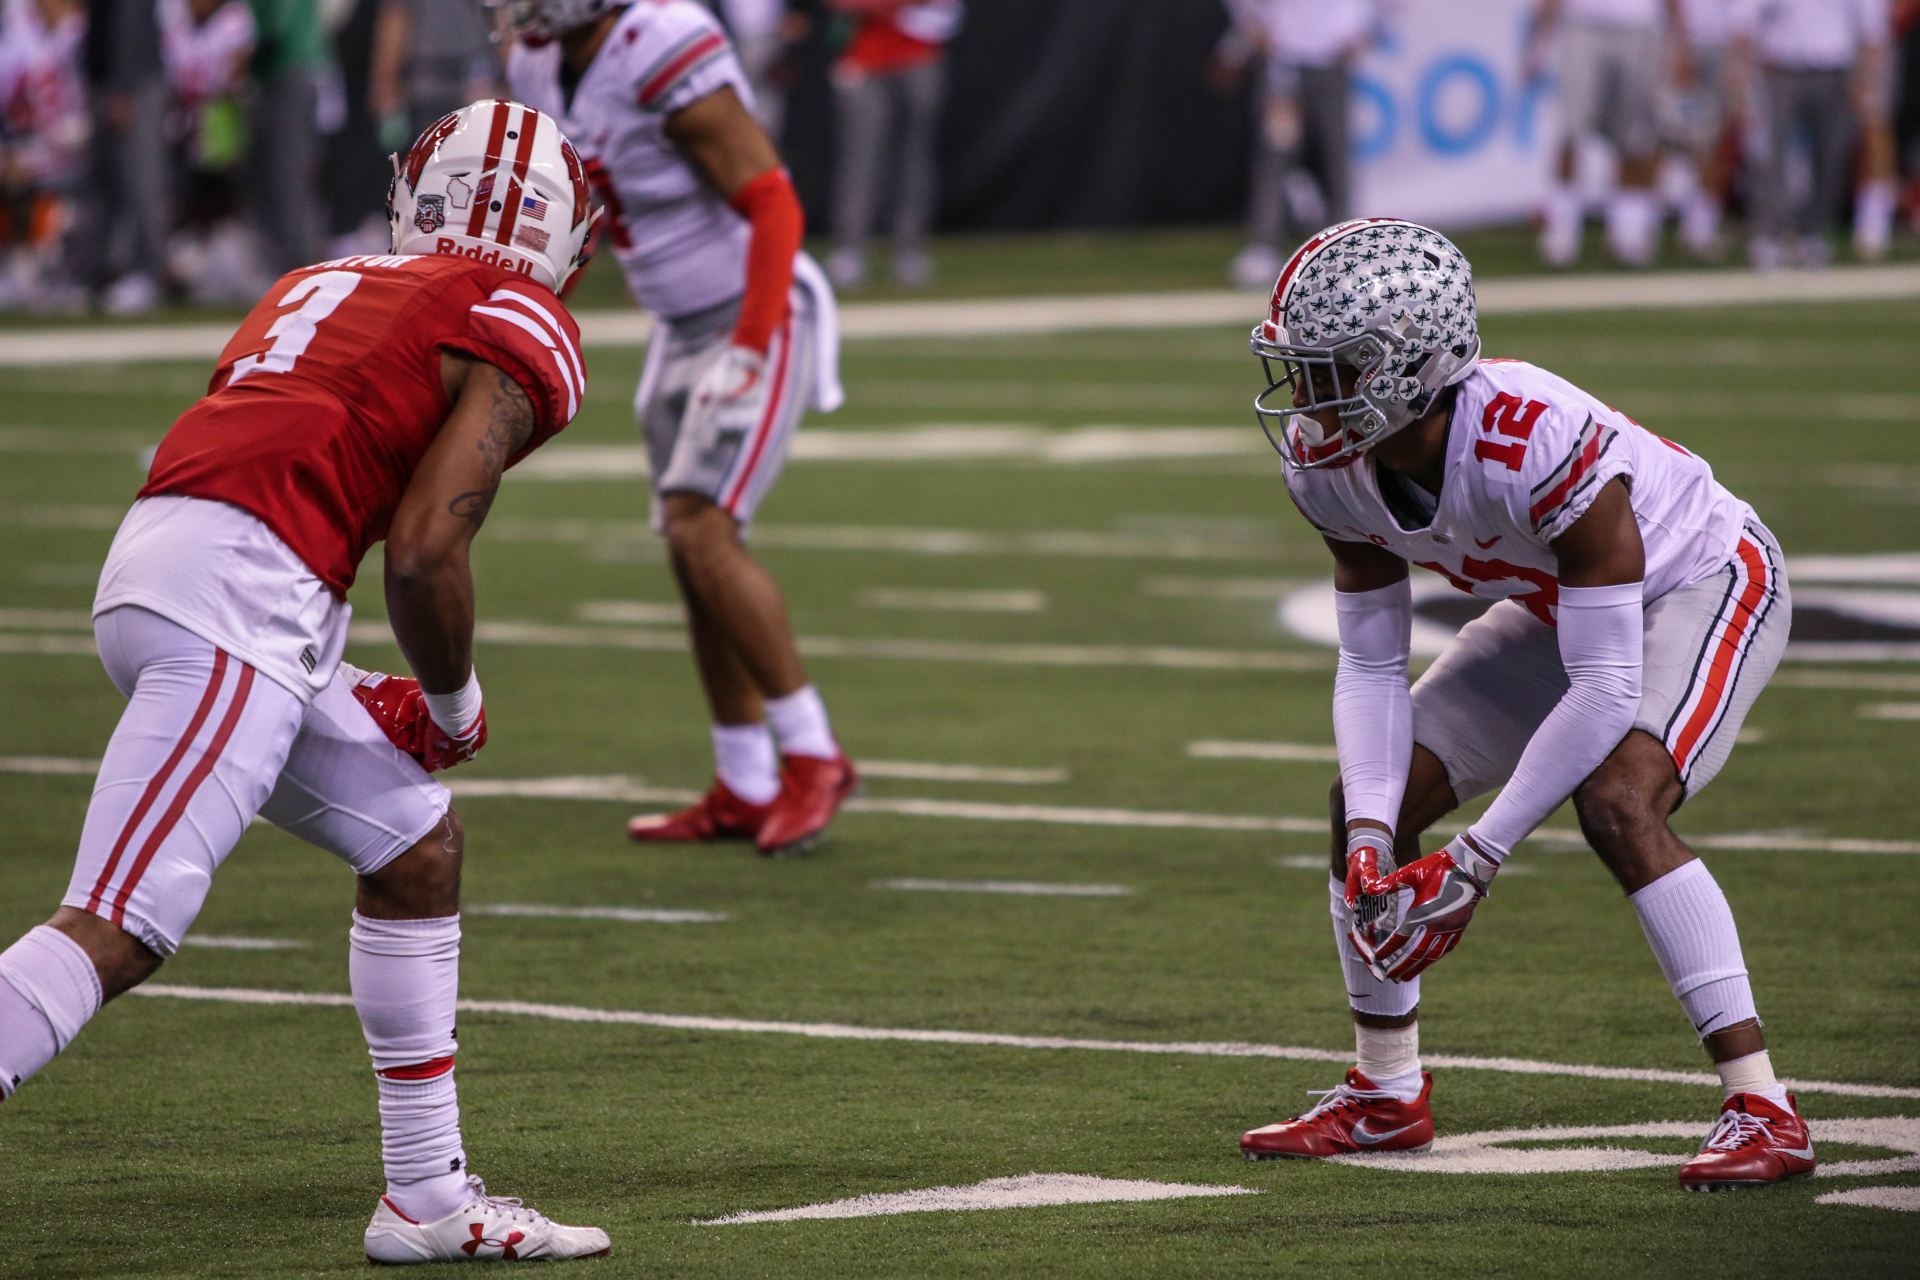 Draft Prospect Denzel Ward would be perfect if available